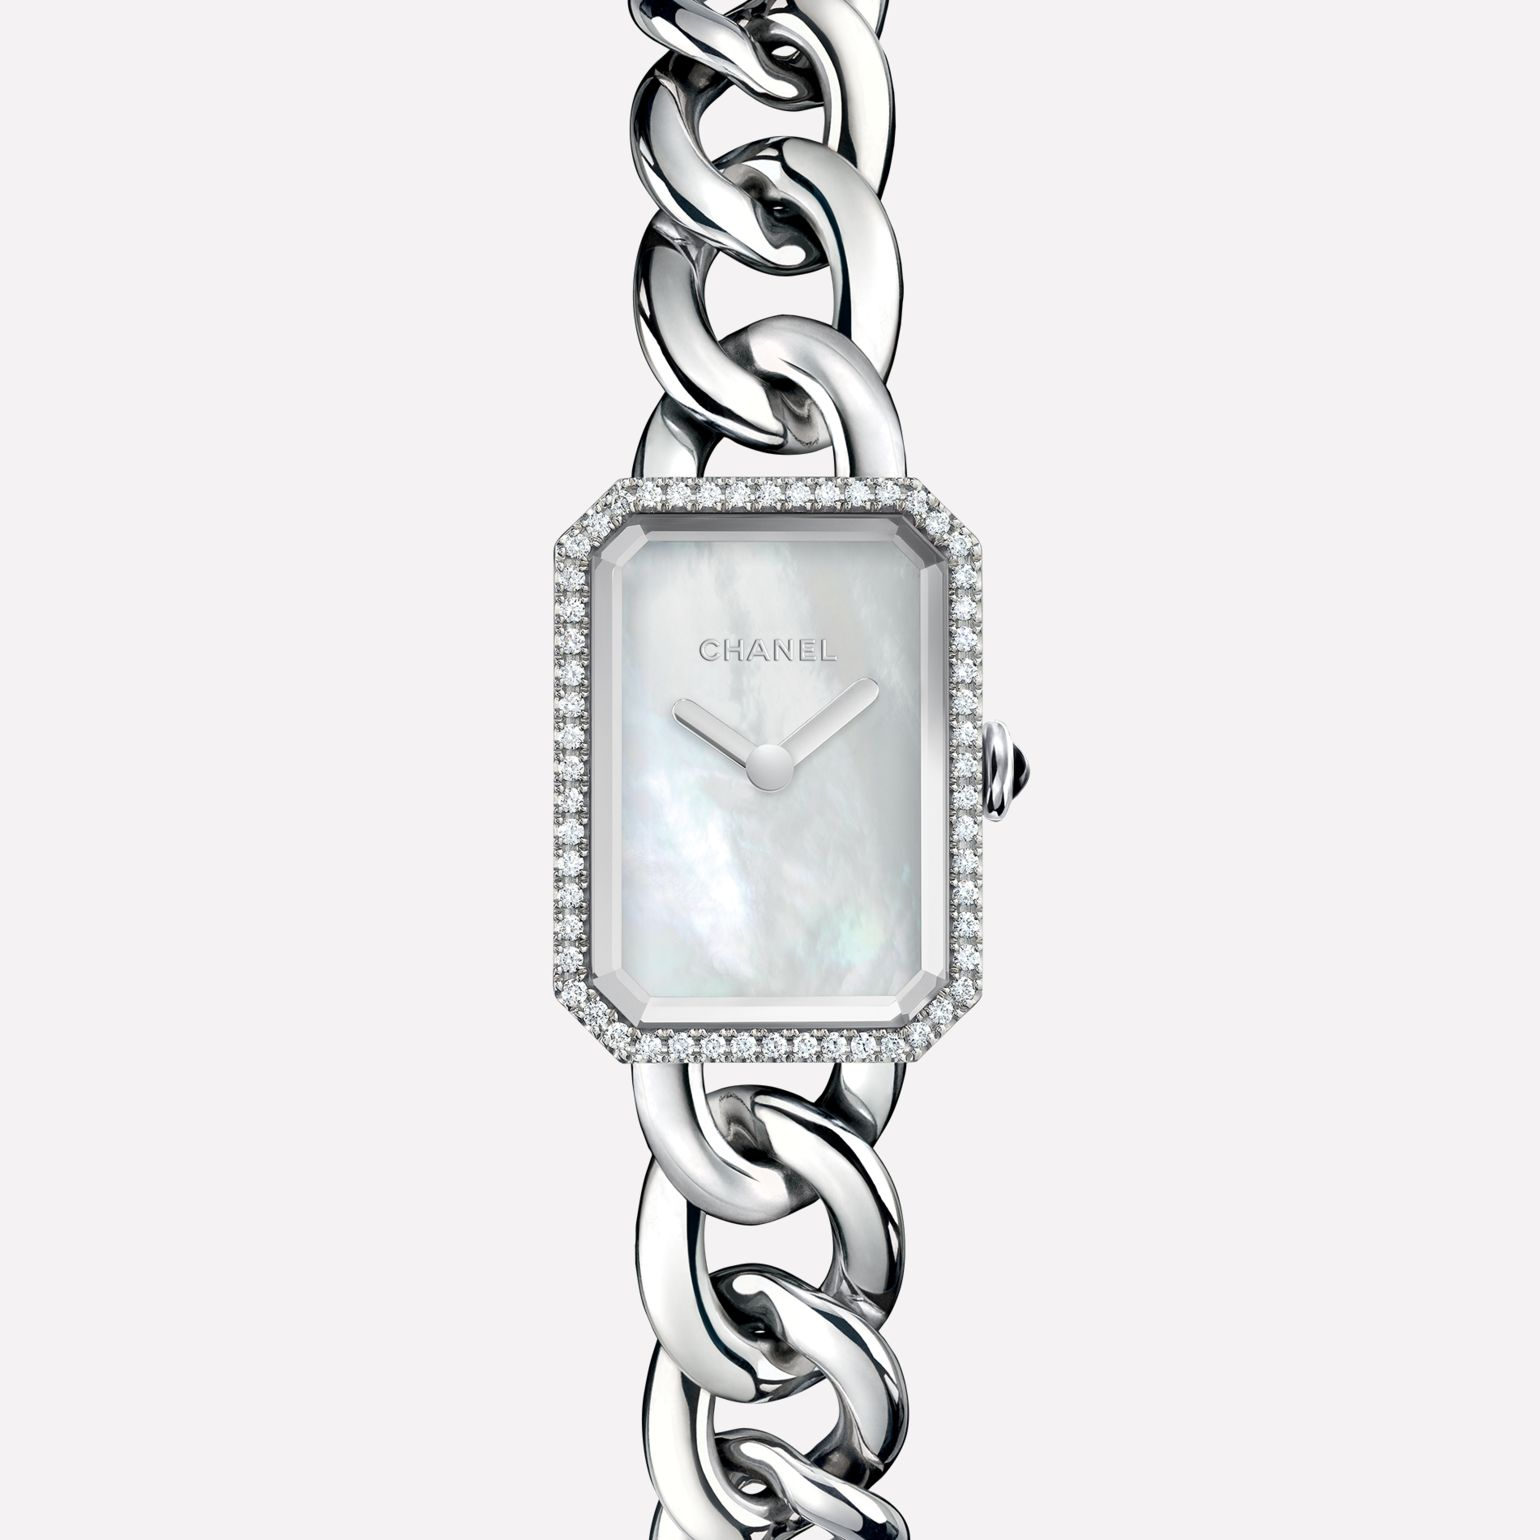 Première Chaîne Watch Small version, steel and diamonds, white mother-of-pearl dial